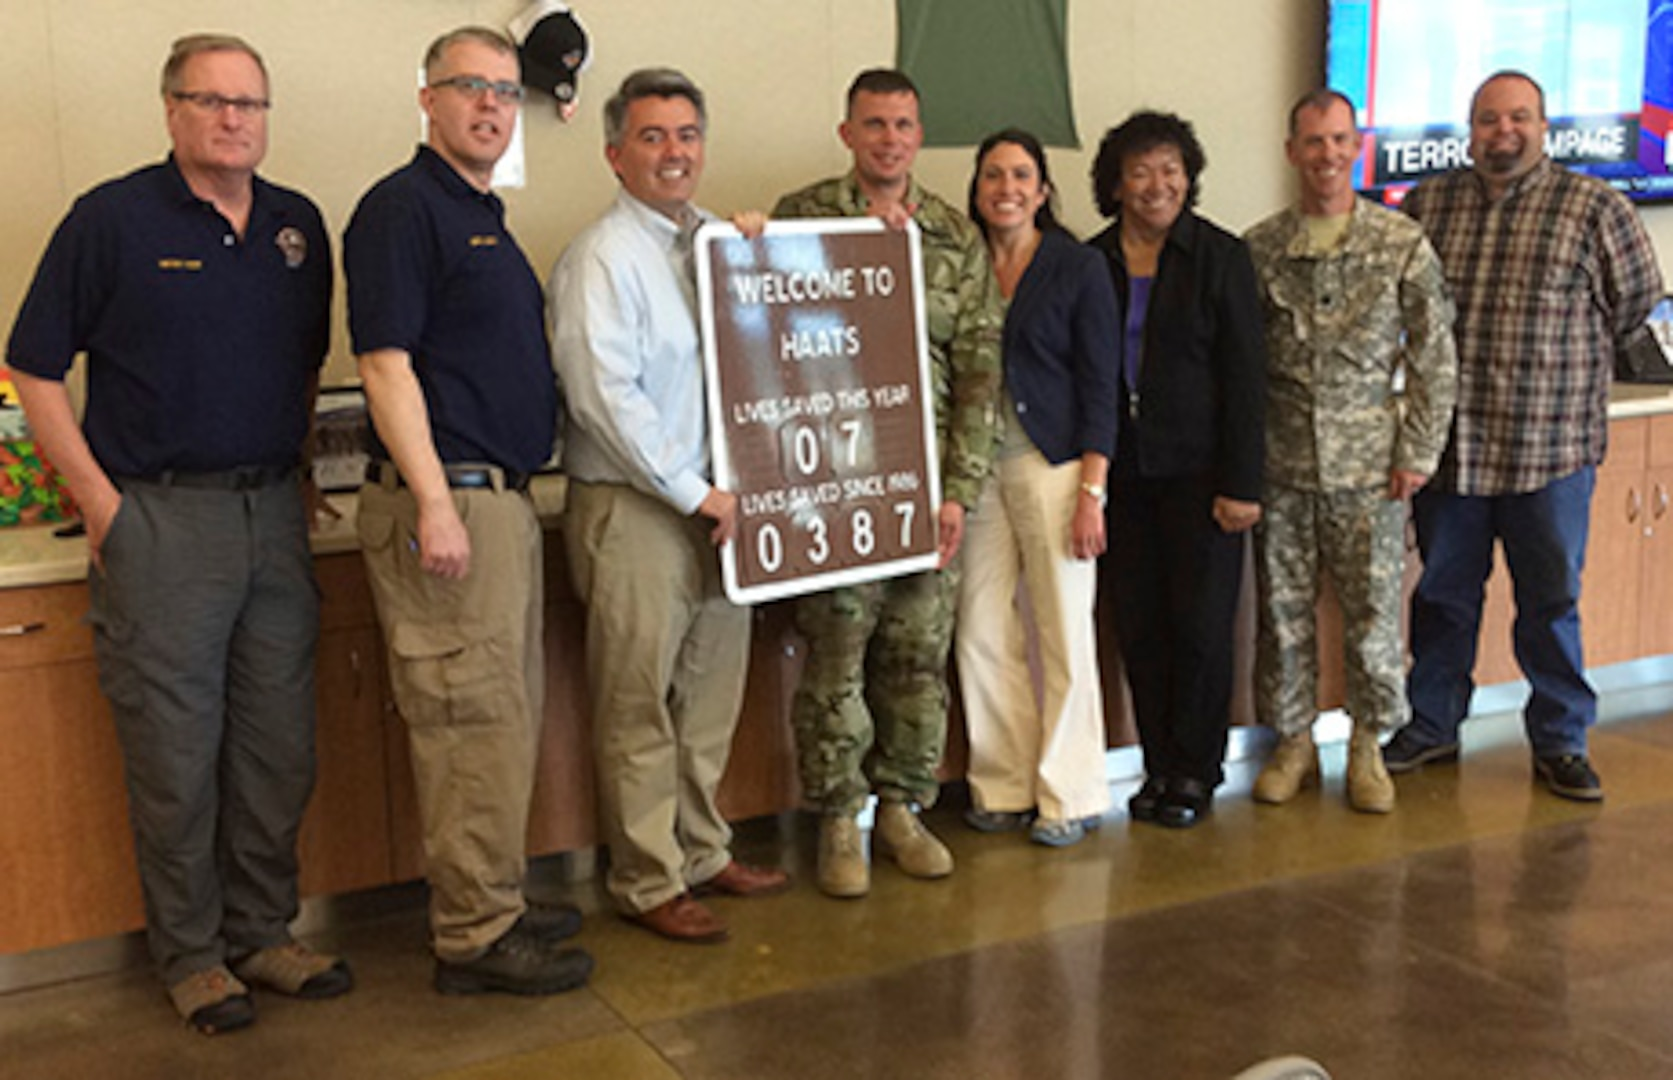 U.S. Senator Cory Gardner, third from left, holds the lives saved sign on display at the High-altitude Army National Guard Aviation Training Site in Gypsum, Colo., July 22, 2016. HAATS aircrews provide ground crews hoist capabilities in some of the most unforgiving terrain on earth. Additionally, HAATS aircraft and equipment, such as night vision googles, and extensive crew training allow rescue teams to reach terrain most civilian aircraft cannot. (Photo by defense contractor Michael Hillwig)